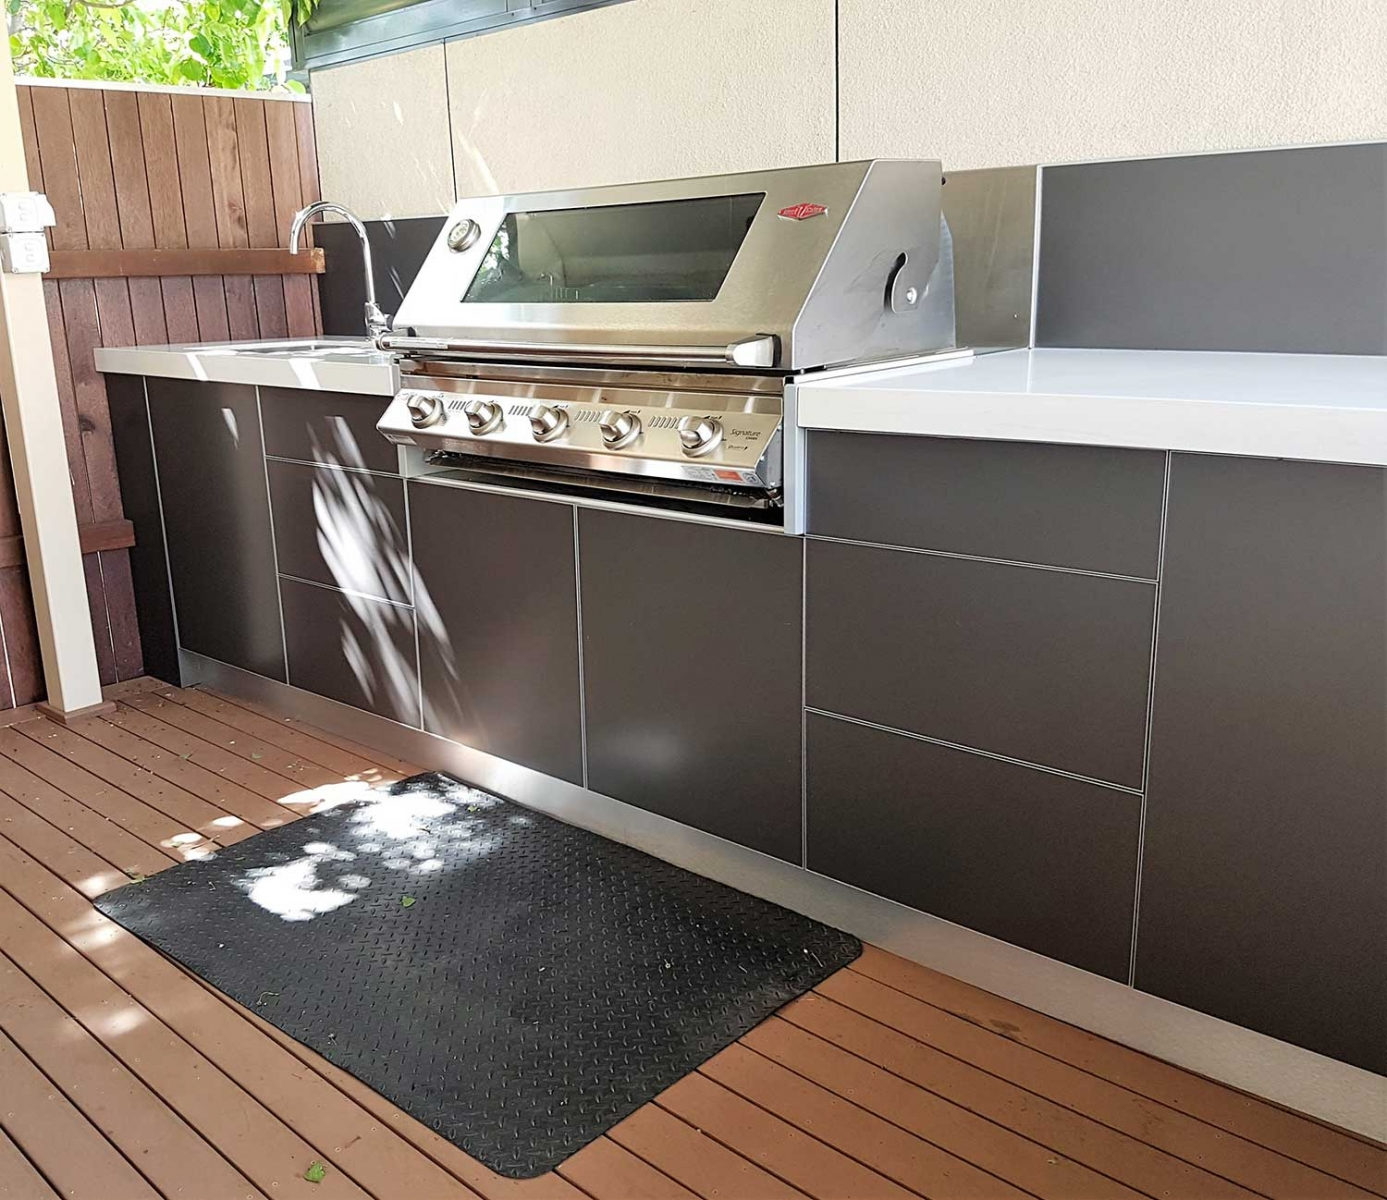 Beefeater-Signature-3000S-Outdoor-Kitchen